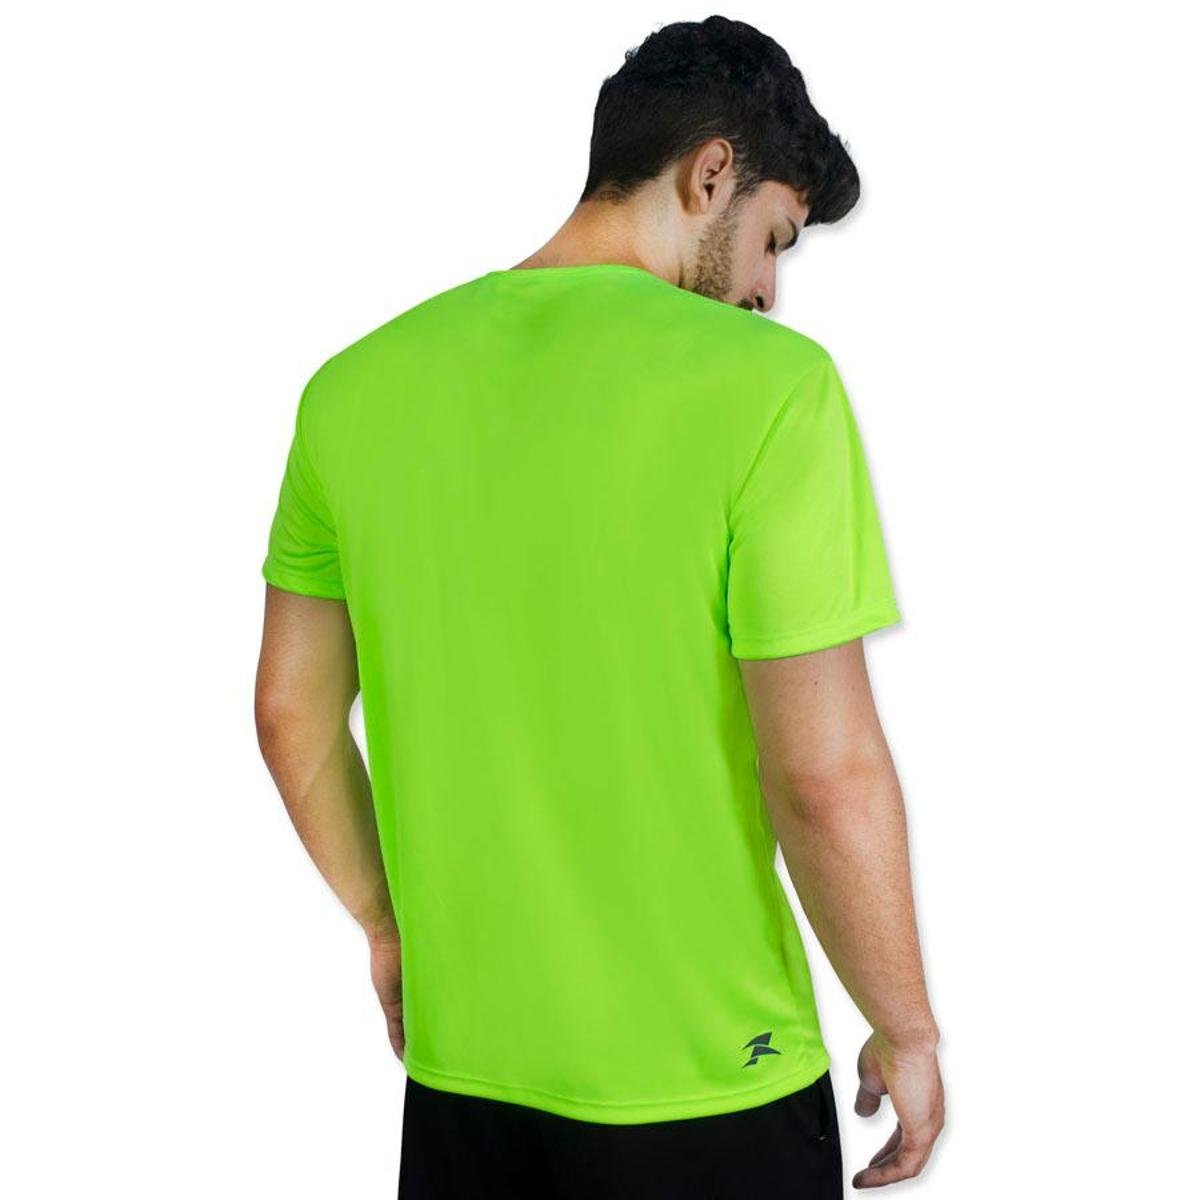 SS Muvin Workout Camiseta Dry Verde Color Limão Color Camiseta vX6zY